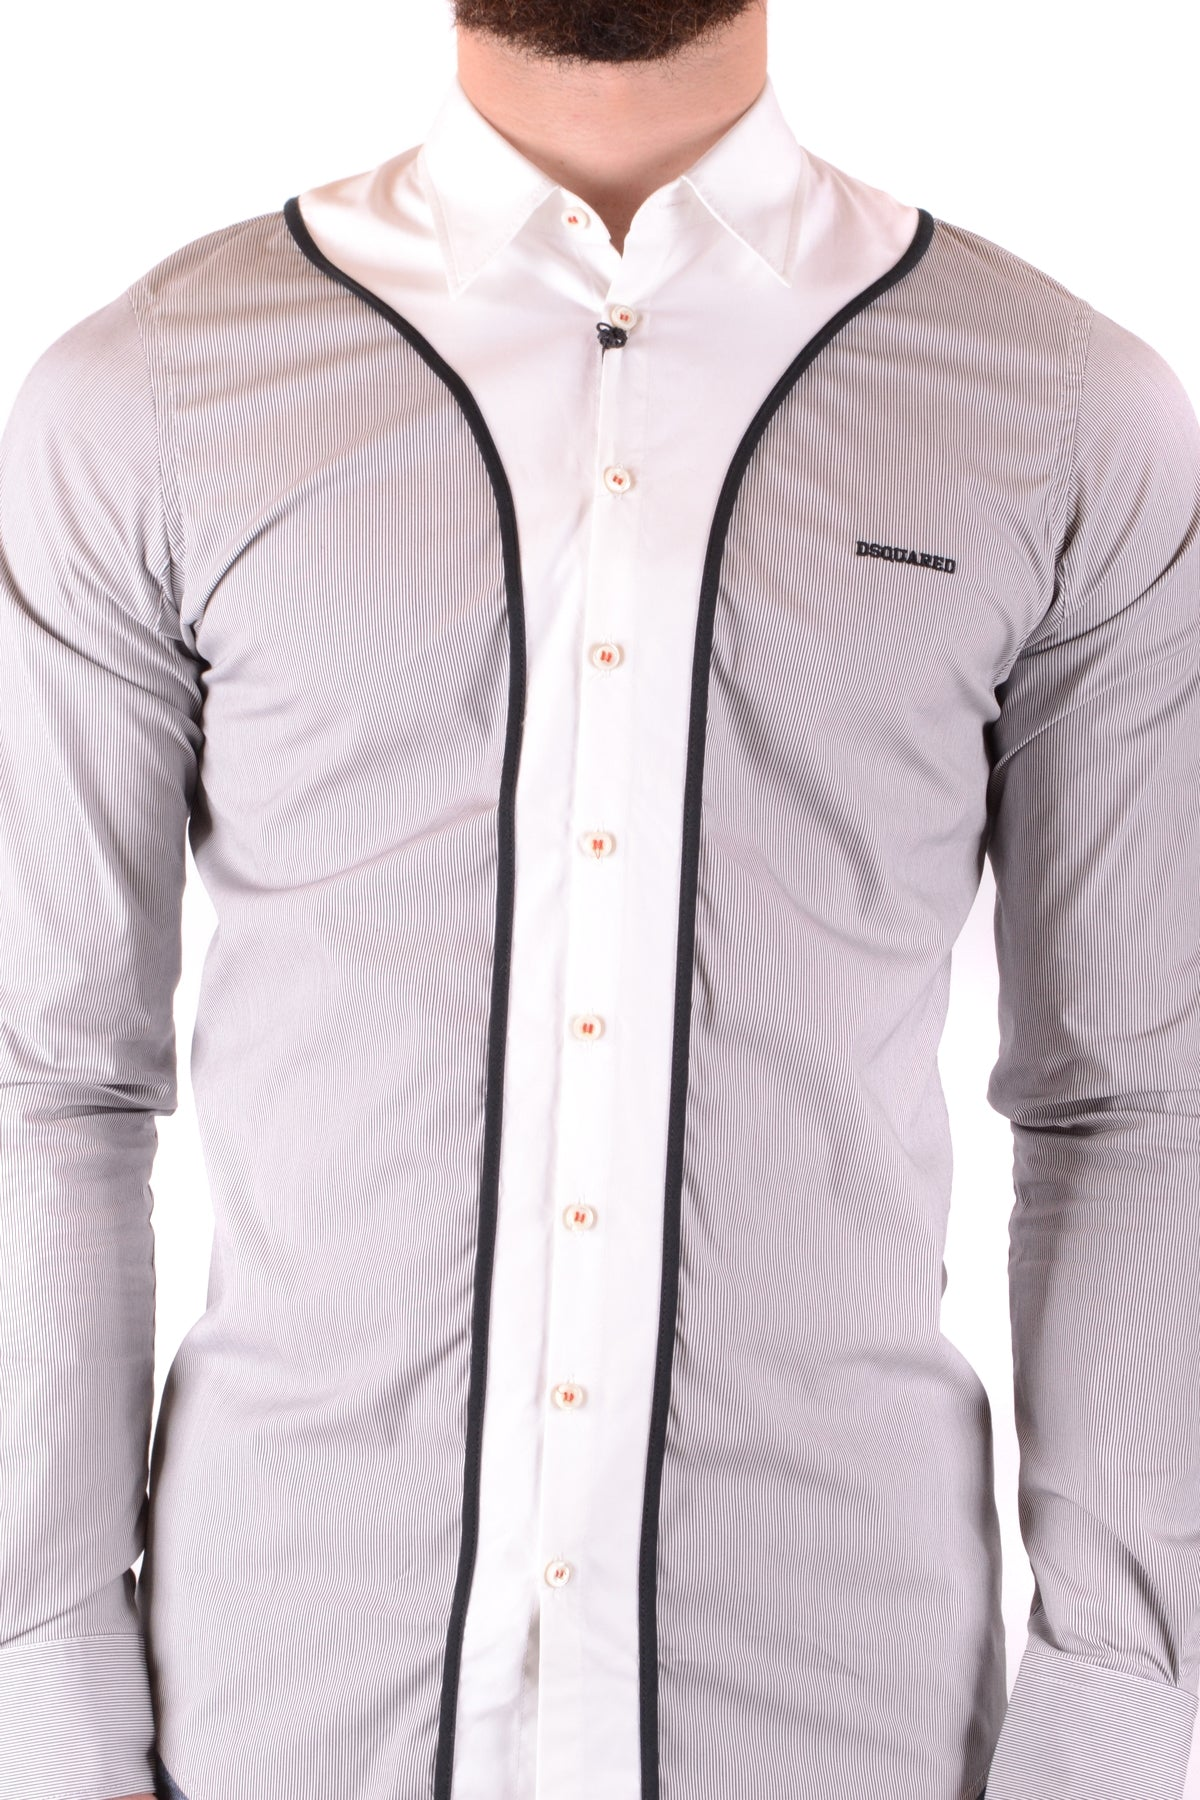 Shirt Dsquared-Shirts - MAN-Product Details Terms: New With LabelYear: 2018Main Color: MulticolorGender: ManMade In: ItalyManufacturer Part Number: 74Dl234Size: Collar SizeSeason: Spring / SummerClothing Type: CamiciaComposition: Cotton 100%-Keyomi-Sook